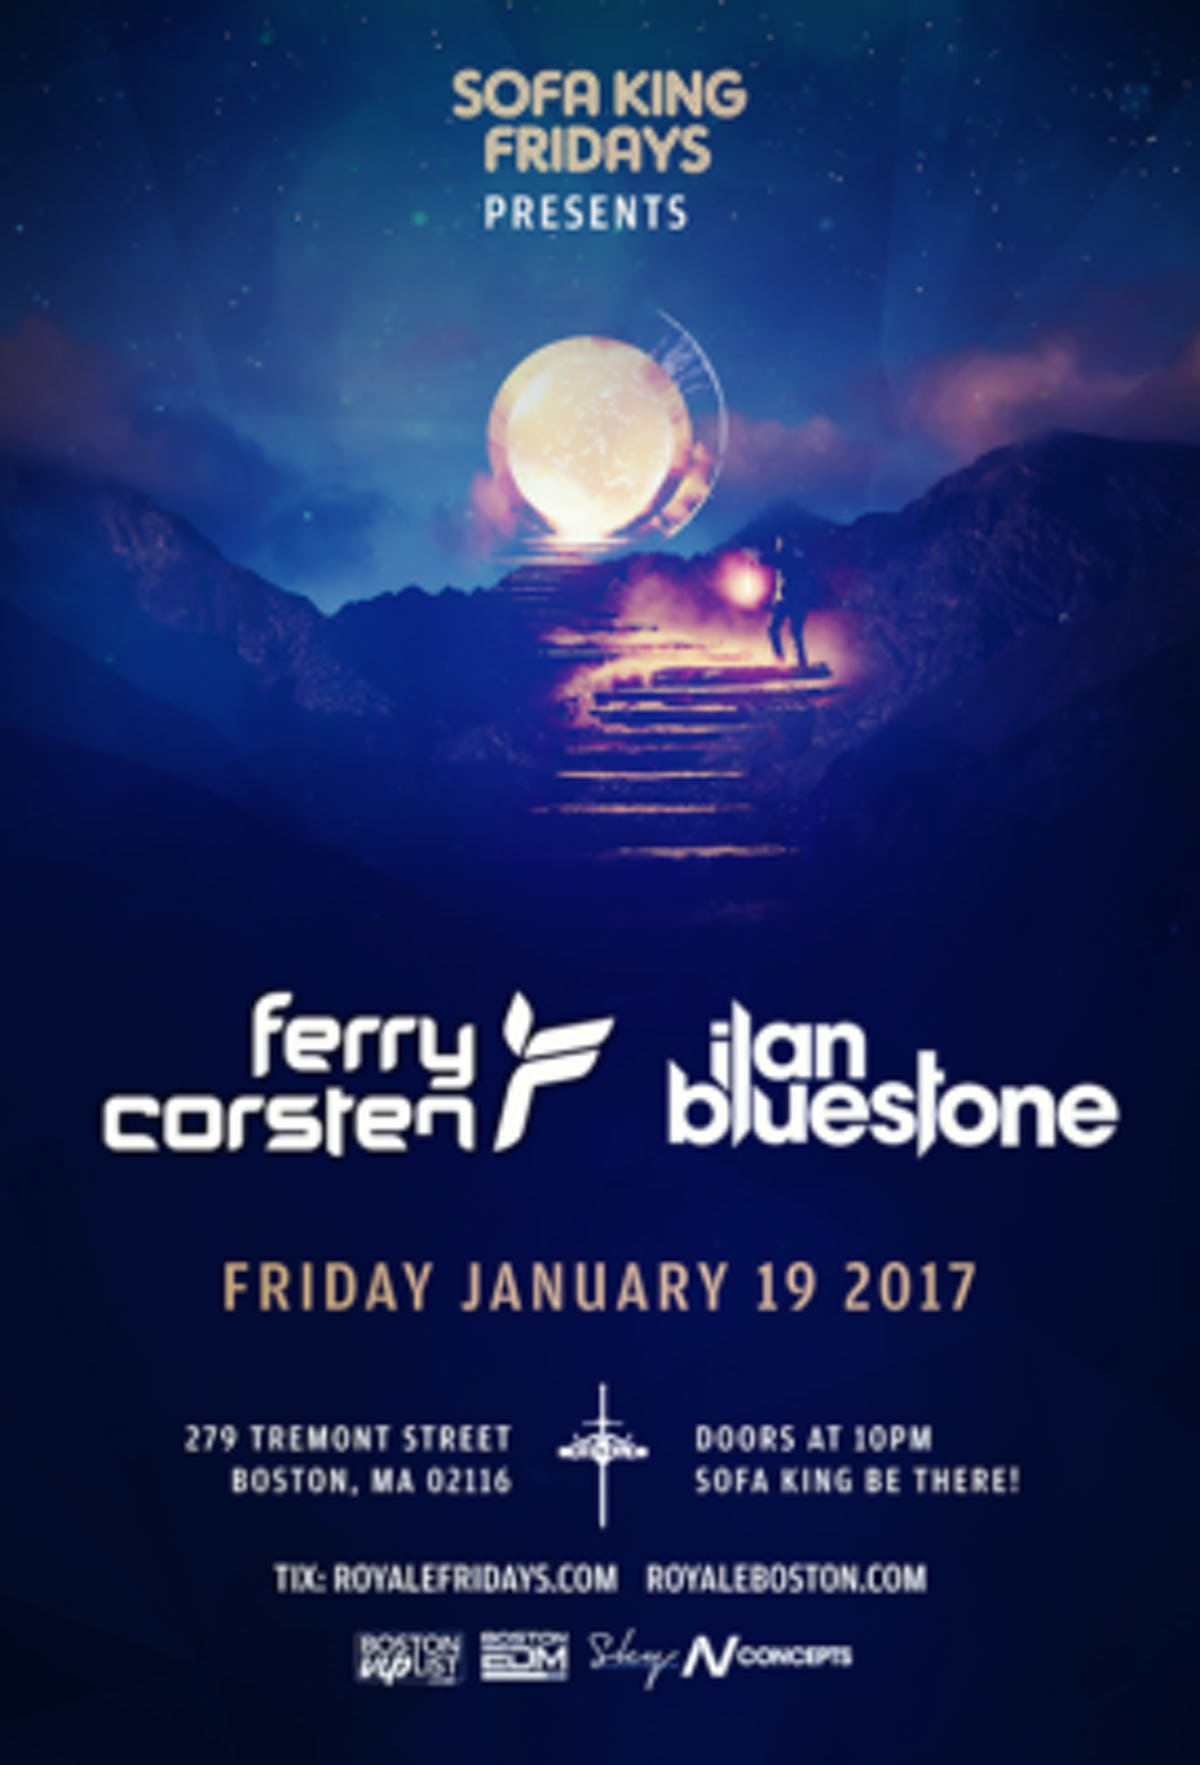 Tablelist Buy Tickets And Tables To Ilan Bluestone Ferry Corsten At Royale 1 19 18 10 00 Pm 21 At Royale